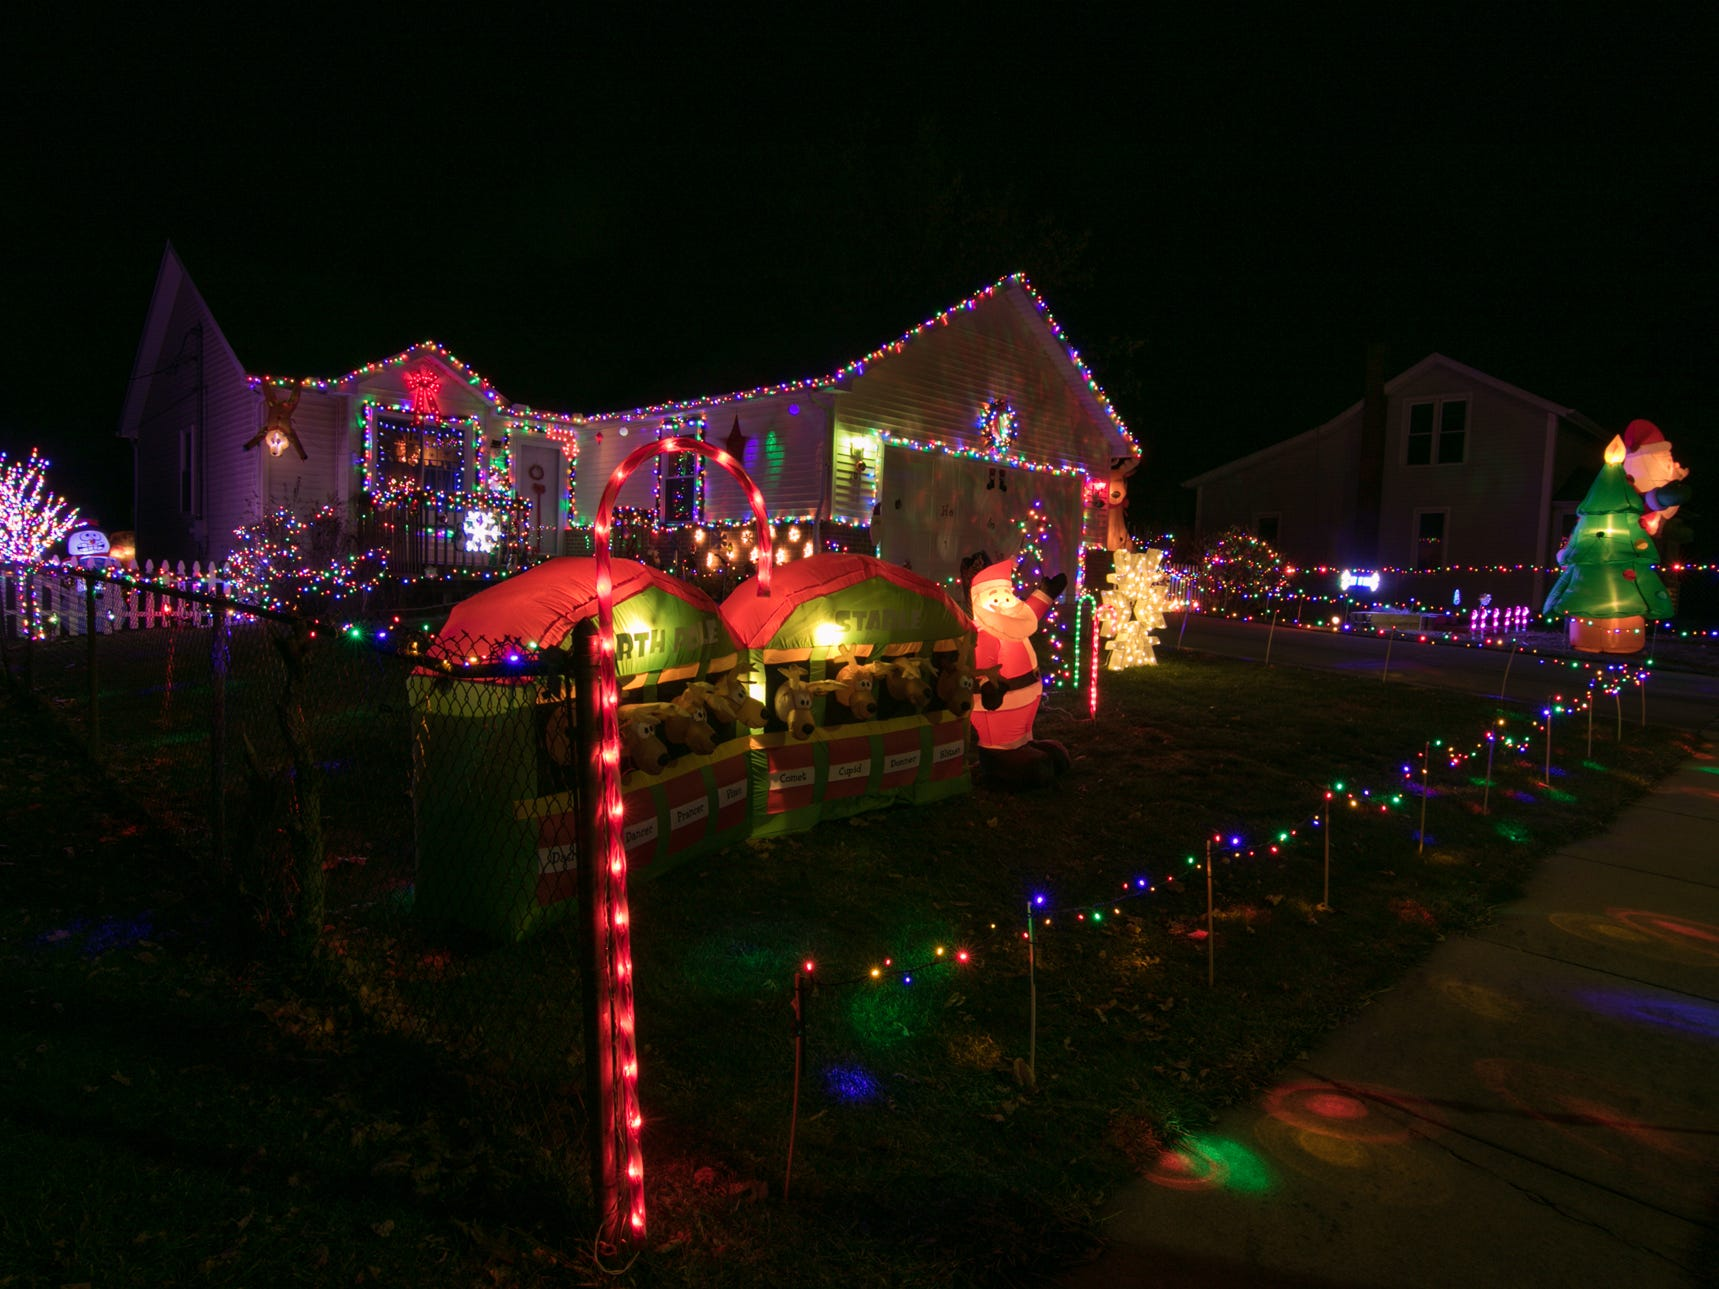 201 E. North St., Fowlerville, the home of Sean and Nancy Donohoe shown Thursday, Dec. 6, 2018. Vote on your favorite home by emailing gbenedict@livingstondaily.com by midnight of Jan. 2, 2019.